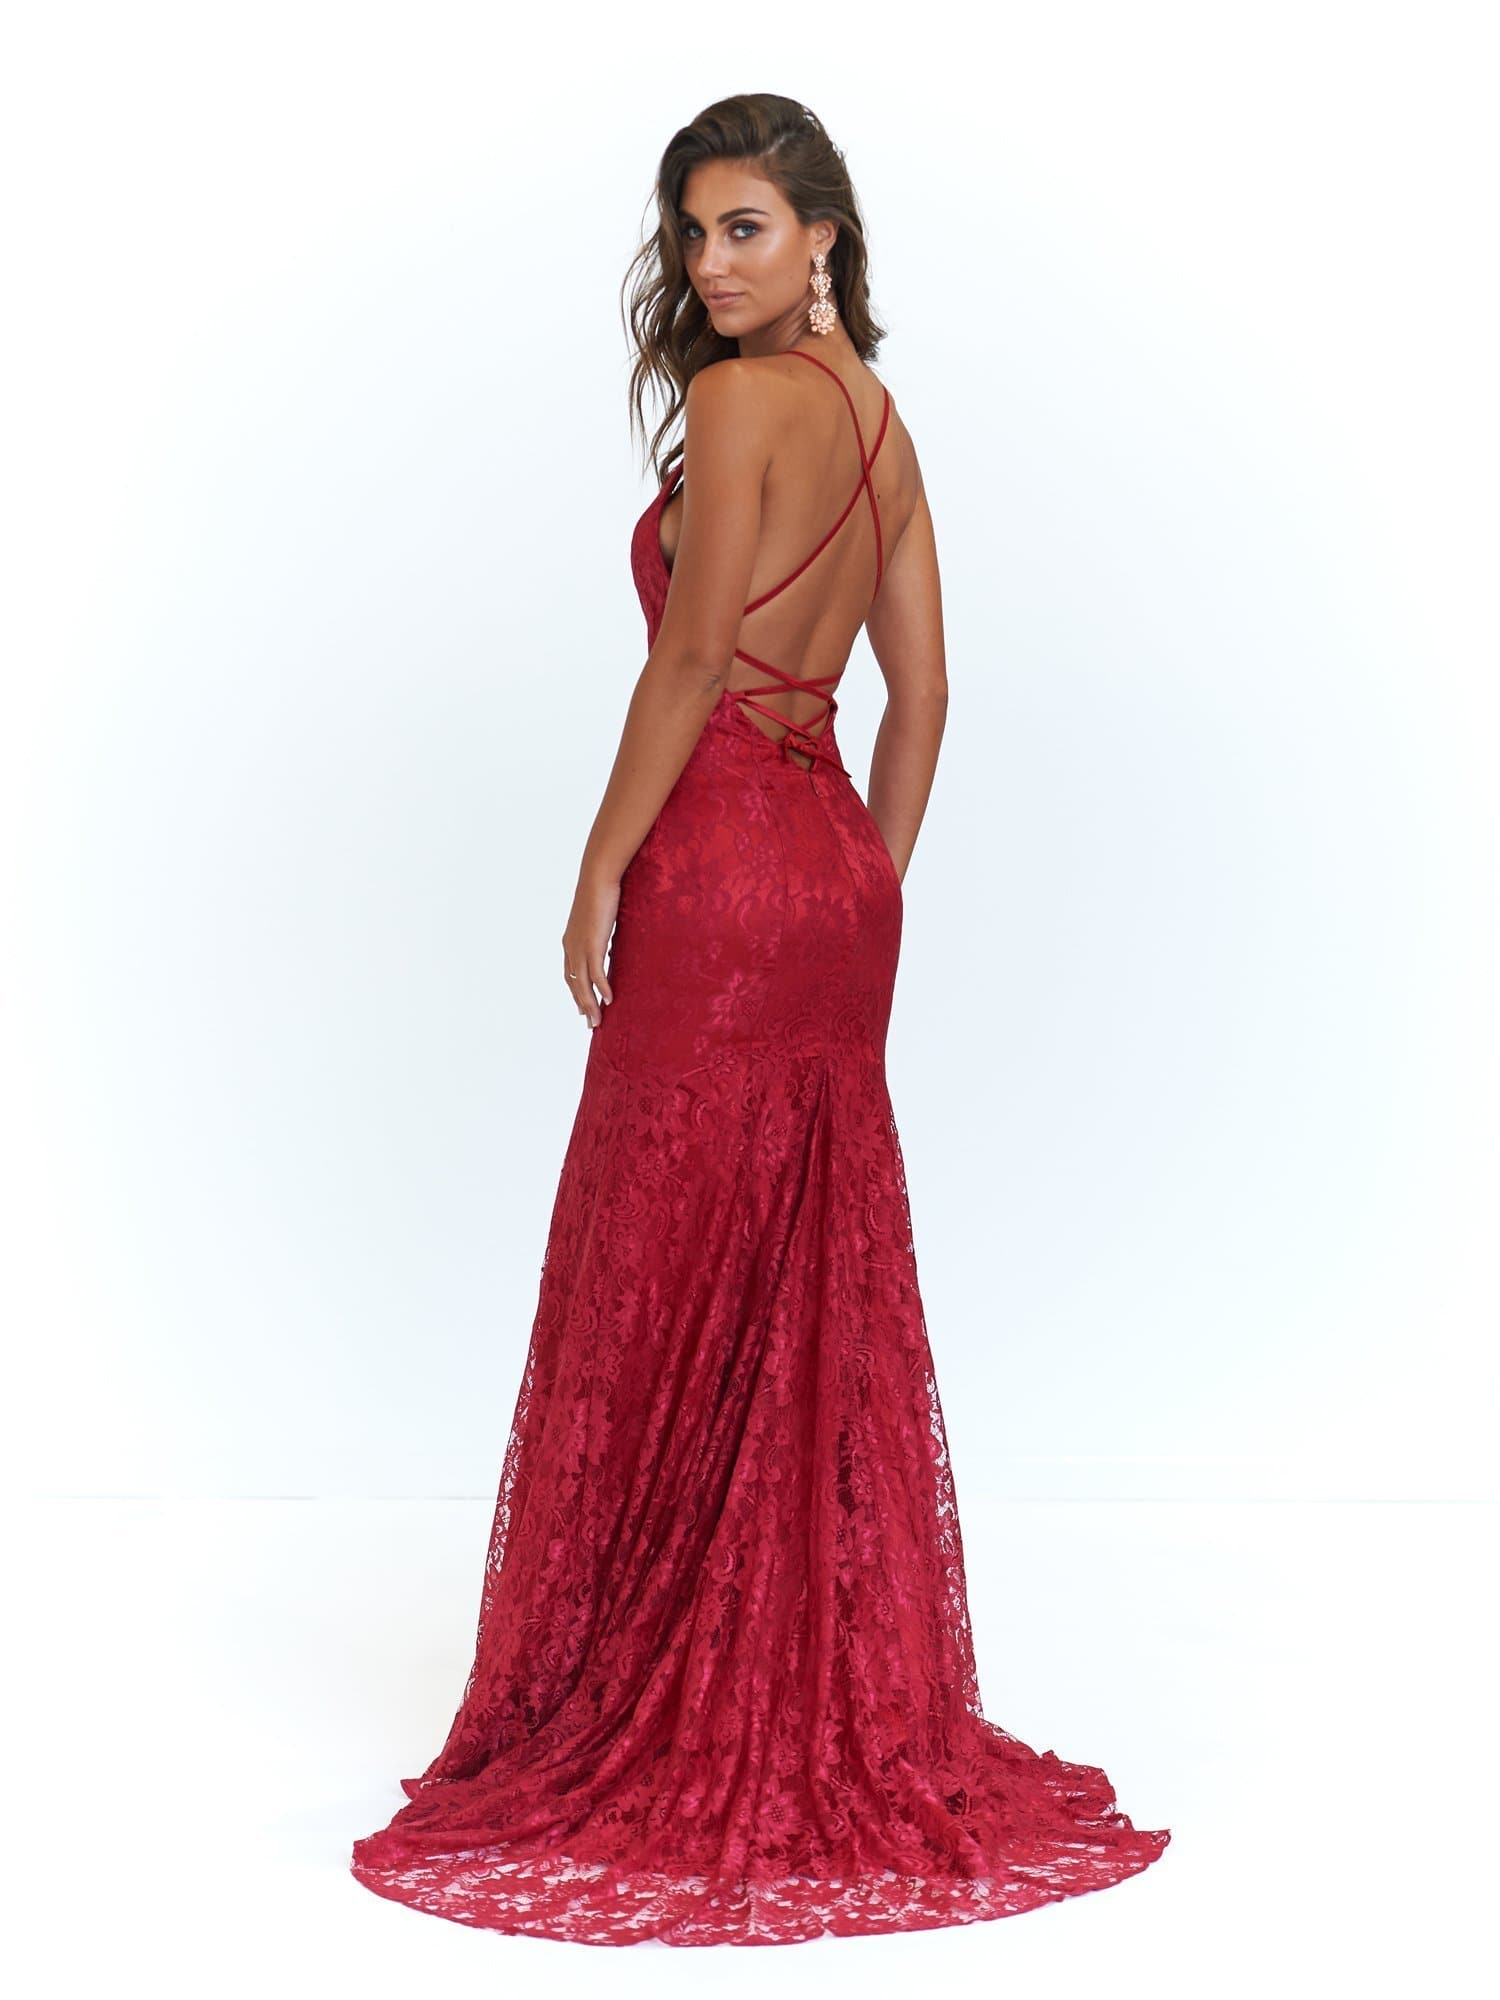 A&N Luxe Aisha Gown - Deep Red Lace Up Mermaid Gown with Low Back